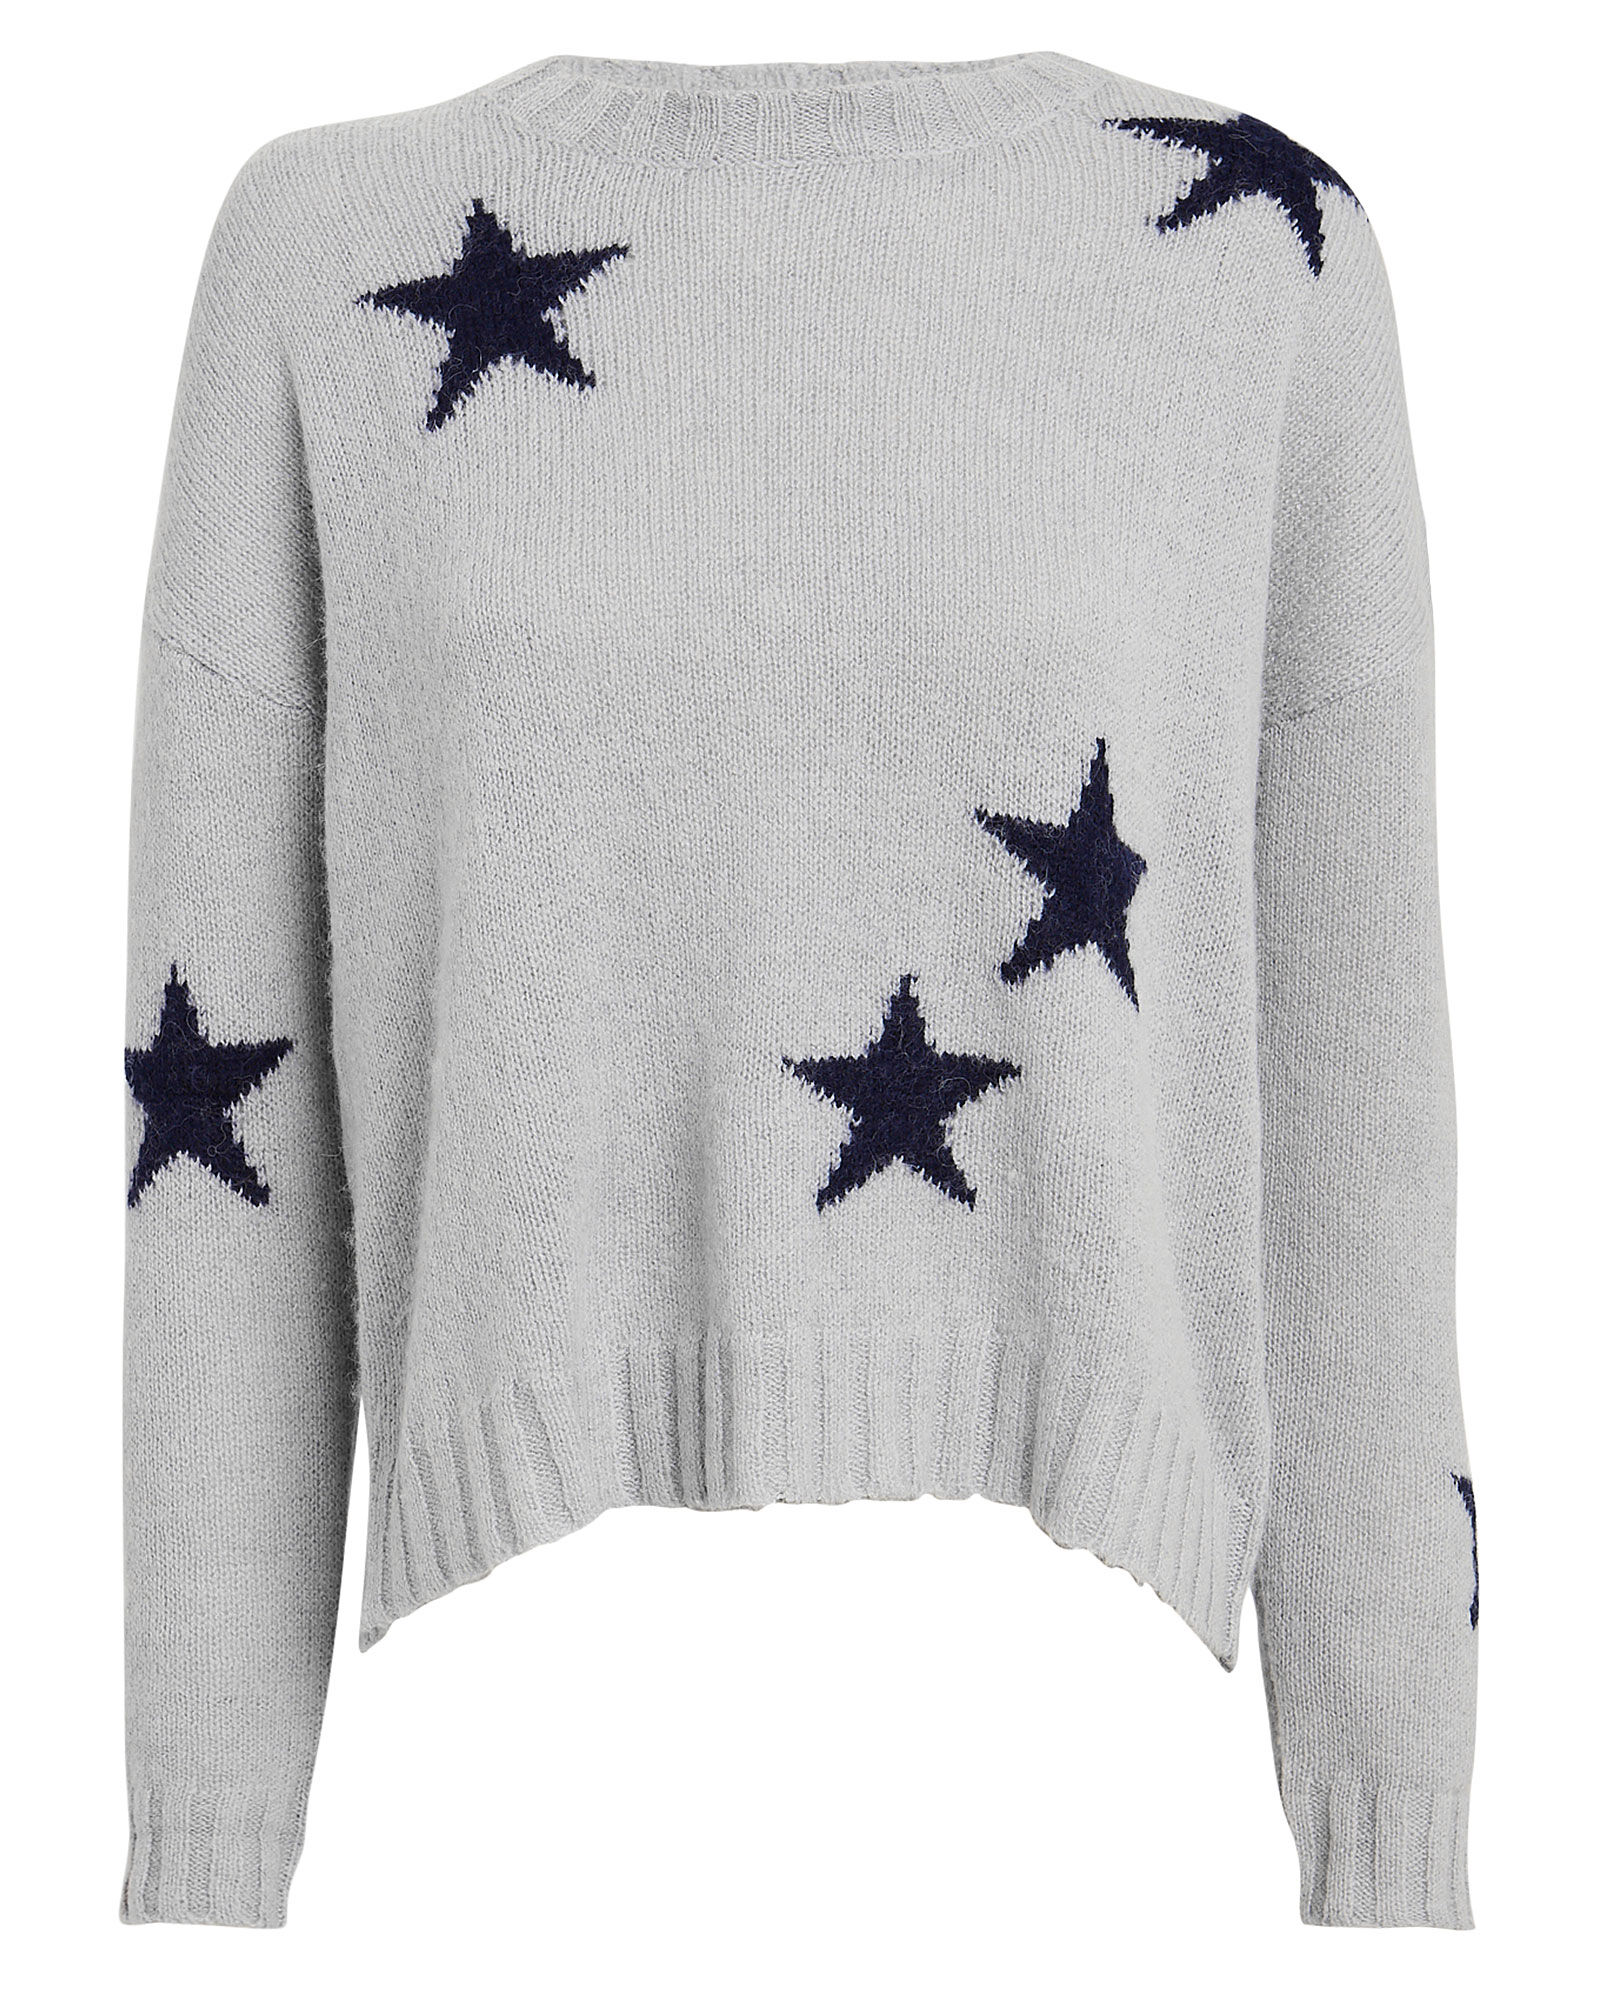 Perci Wool-Blend Star Sweater, HEATHER GREY, hi-res